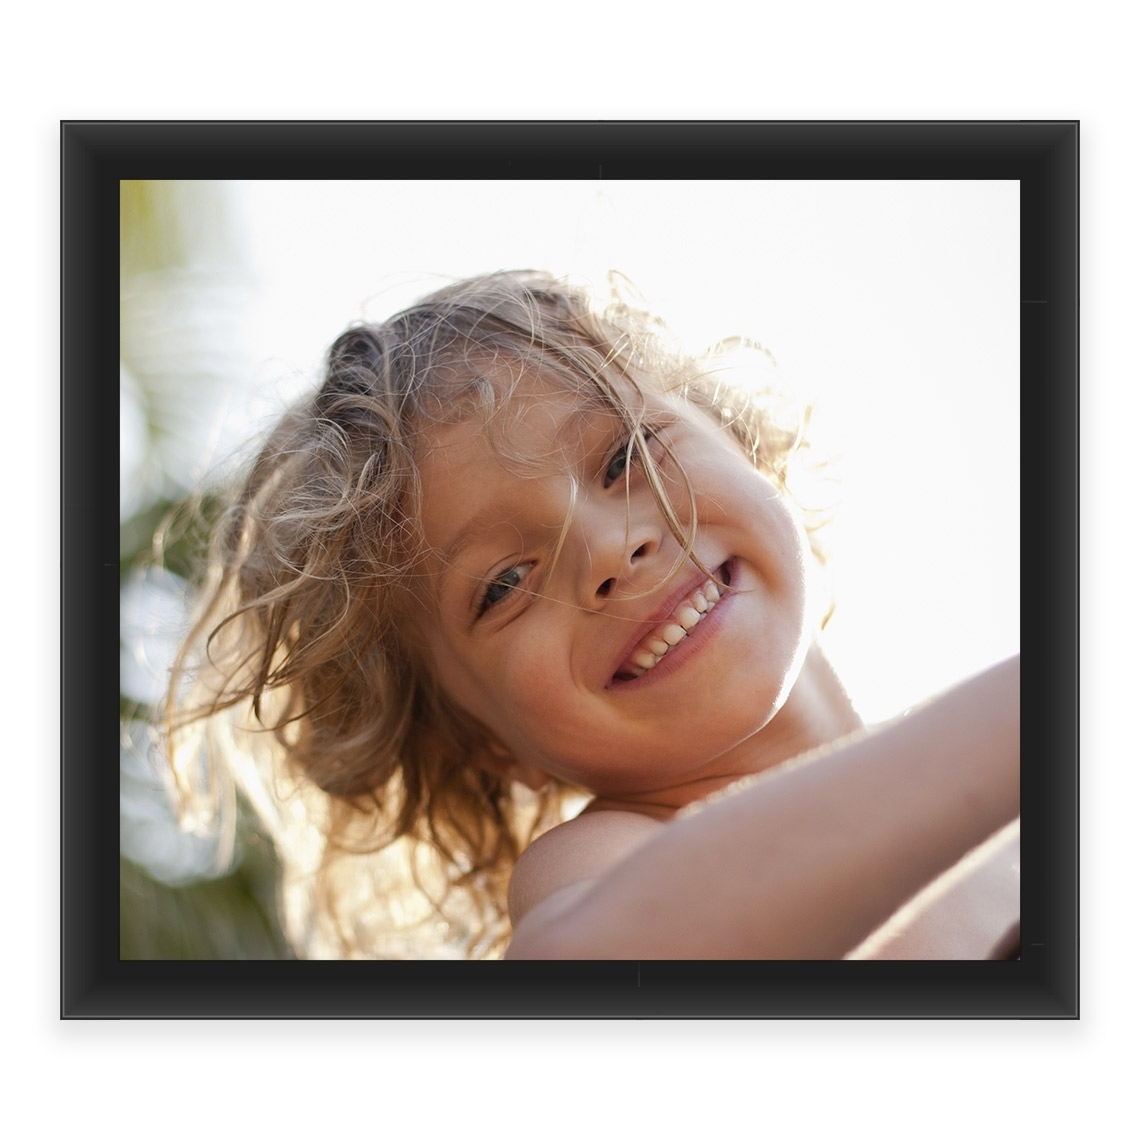 Custom Framed Prints | Framed Photo Prints With Modern Frames Throughout Most Up To Date Contemporary Framed Art Prints (View 7 of 15)